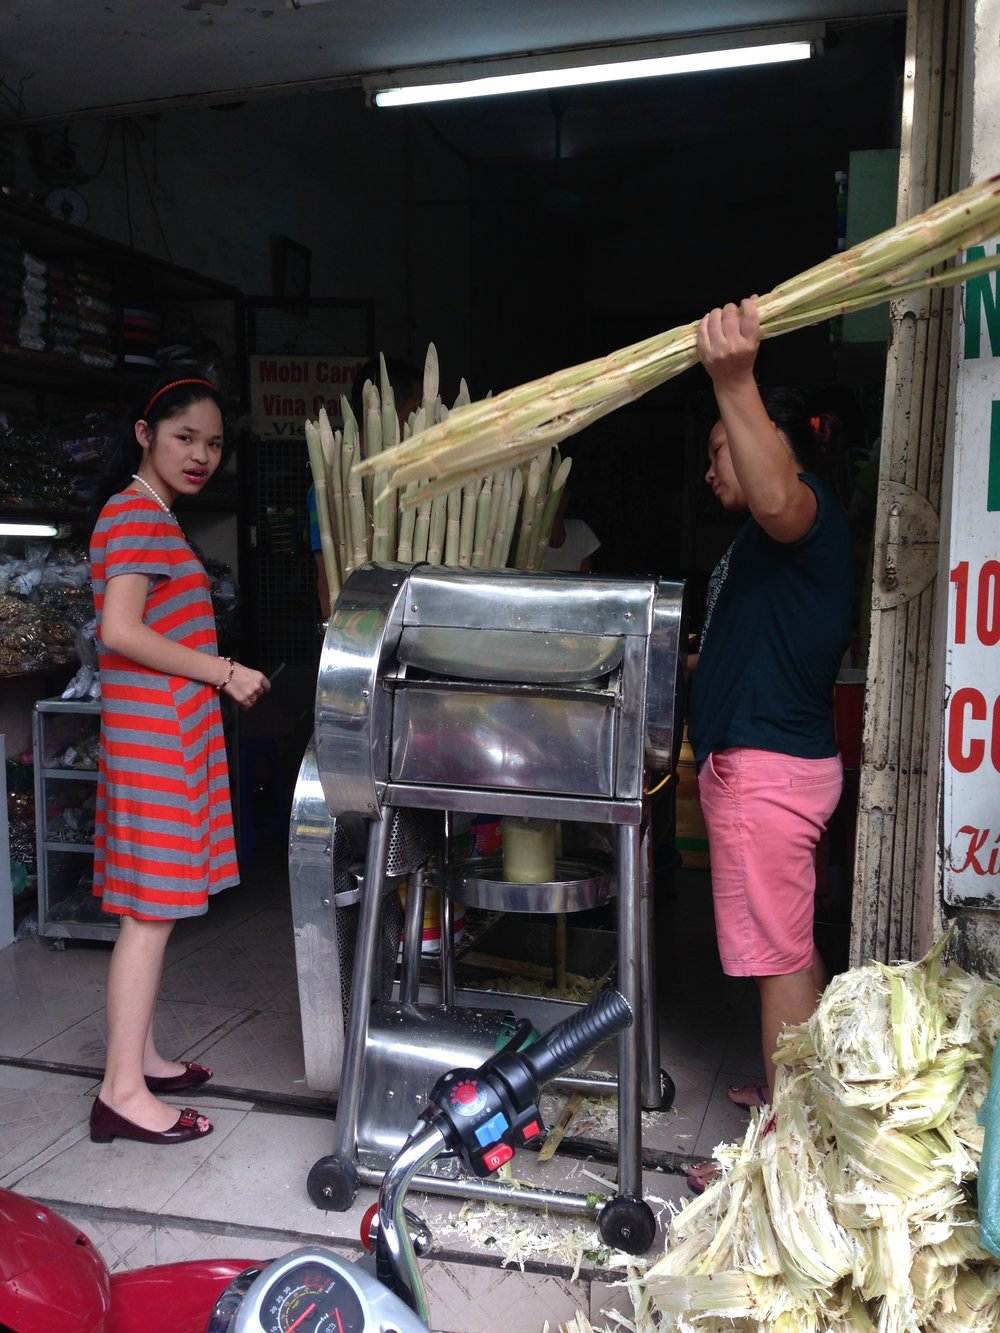 Sugarcane juice machine in Hanoi, Vietnam - illumelation.com